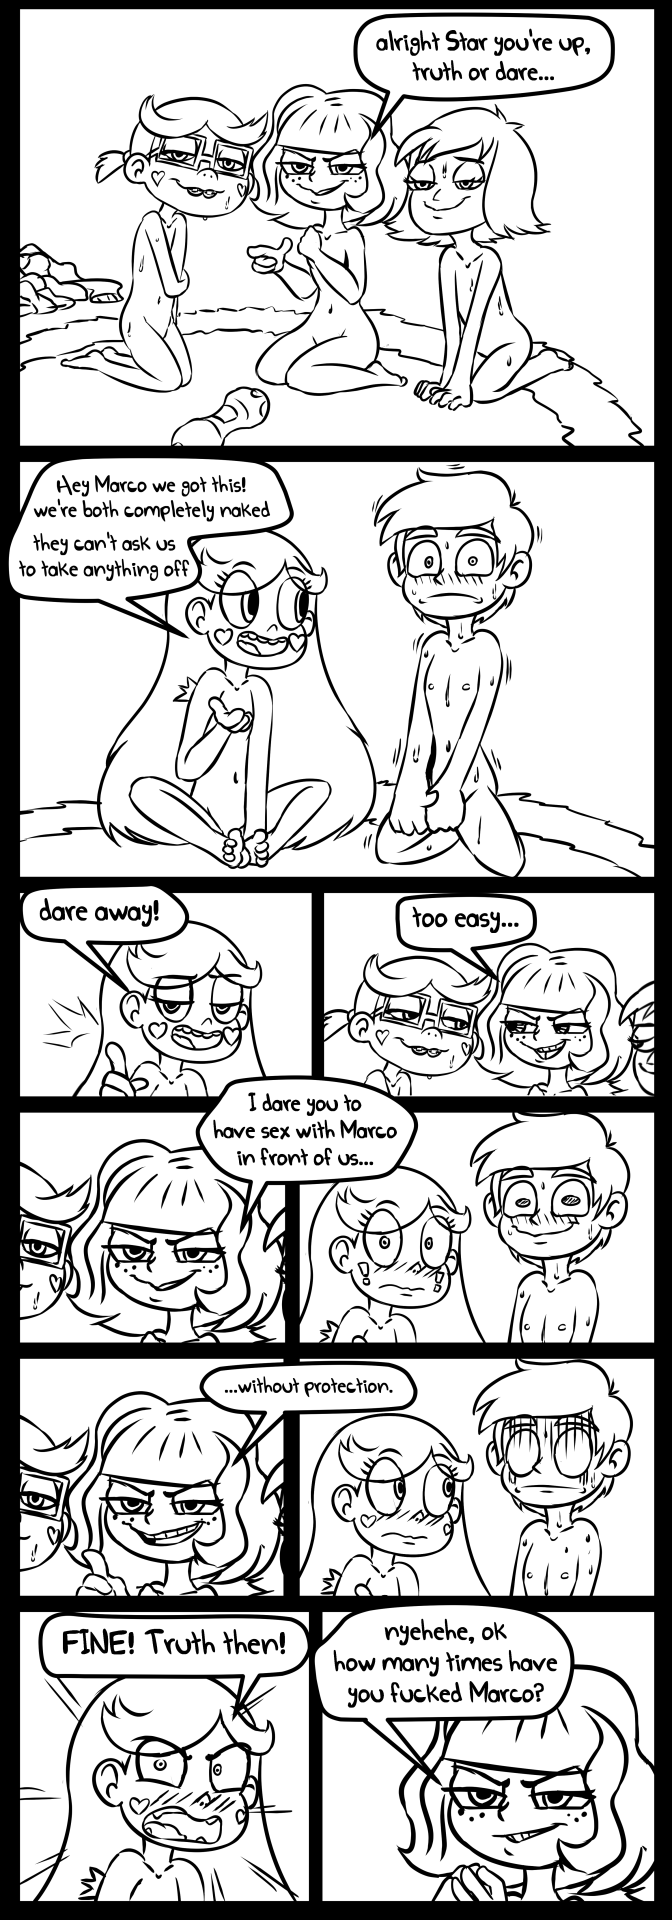 the vs evil comic star of starco forces Fable how to have intercourse